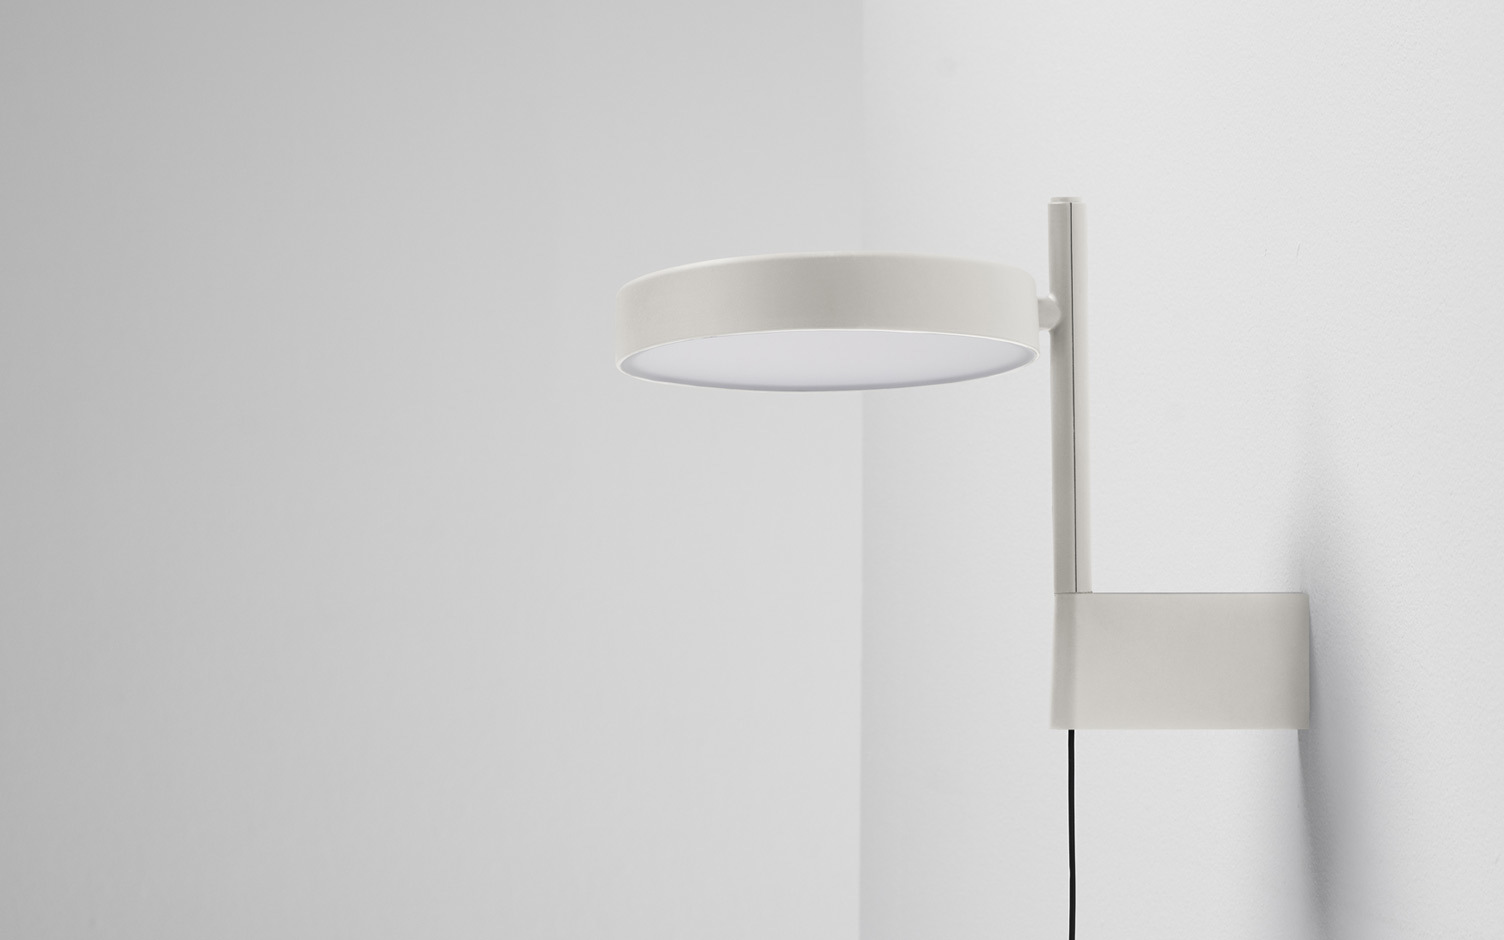 Ceiling & Wall Lights catalogue image